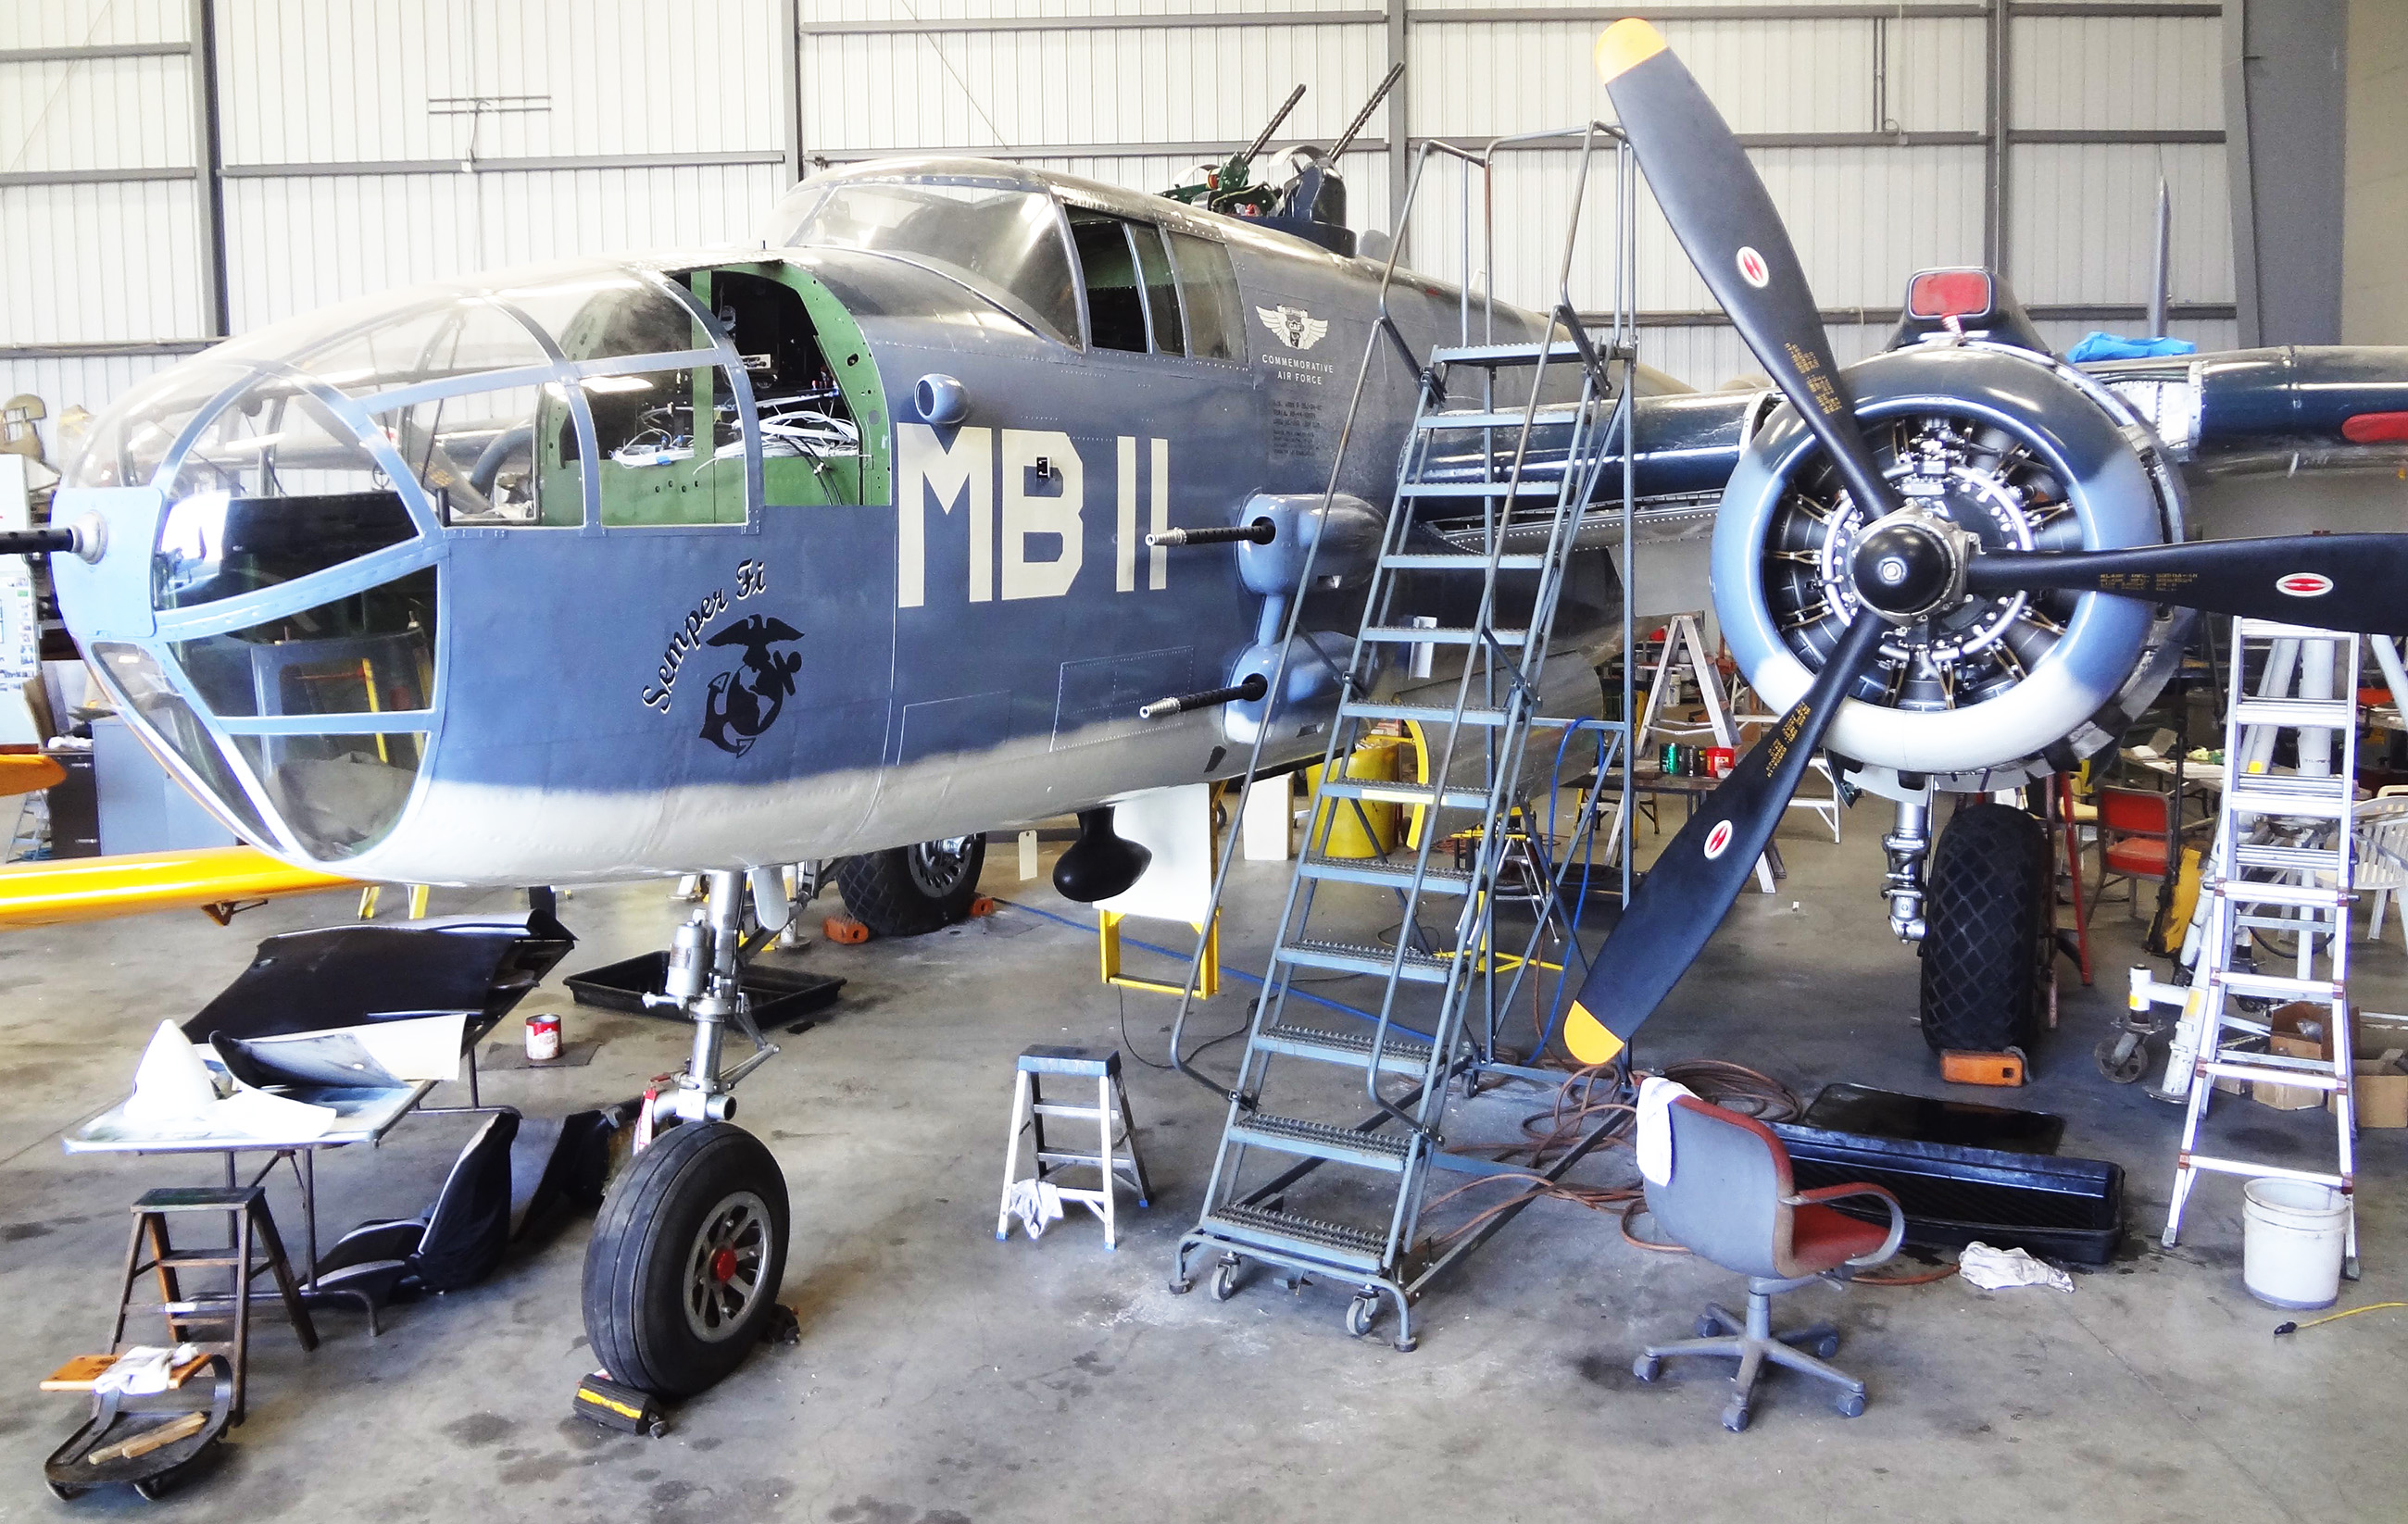 The PBJ sitting in the SoCal hangar awaiting the final infusion of cash to finish her restoration. Feb.2015 - Moreno Aguiari.